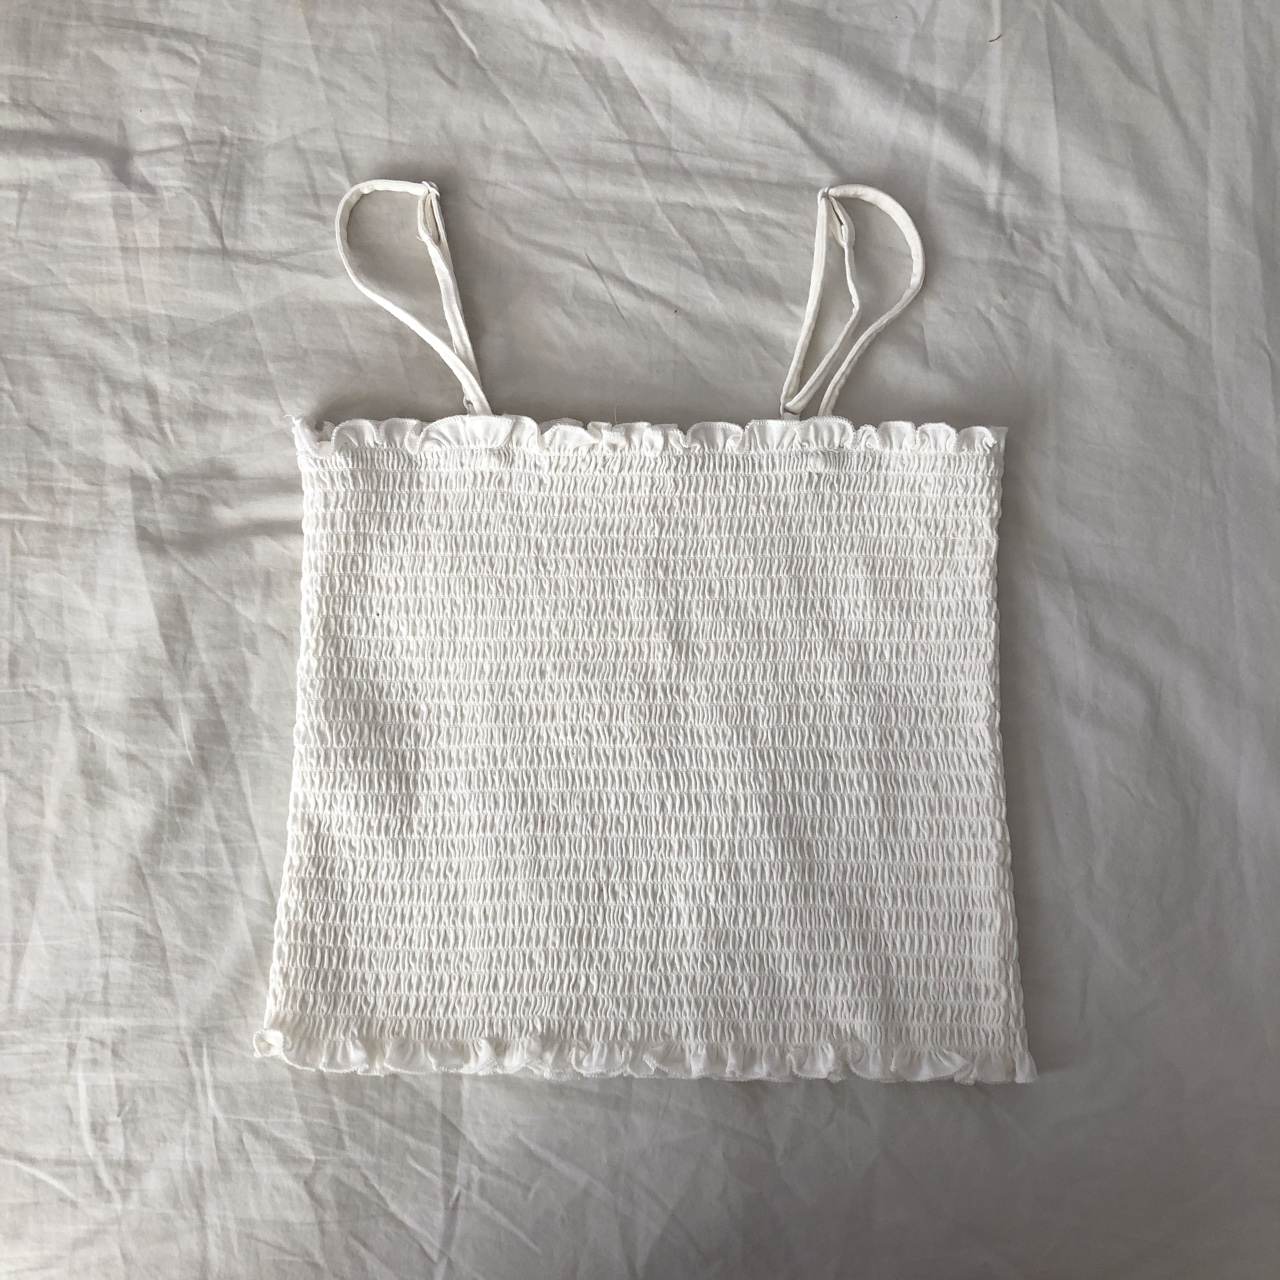 On Hold For Relagrab05 Brandy Melville White Ally Depop